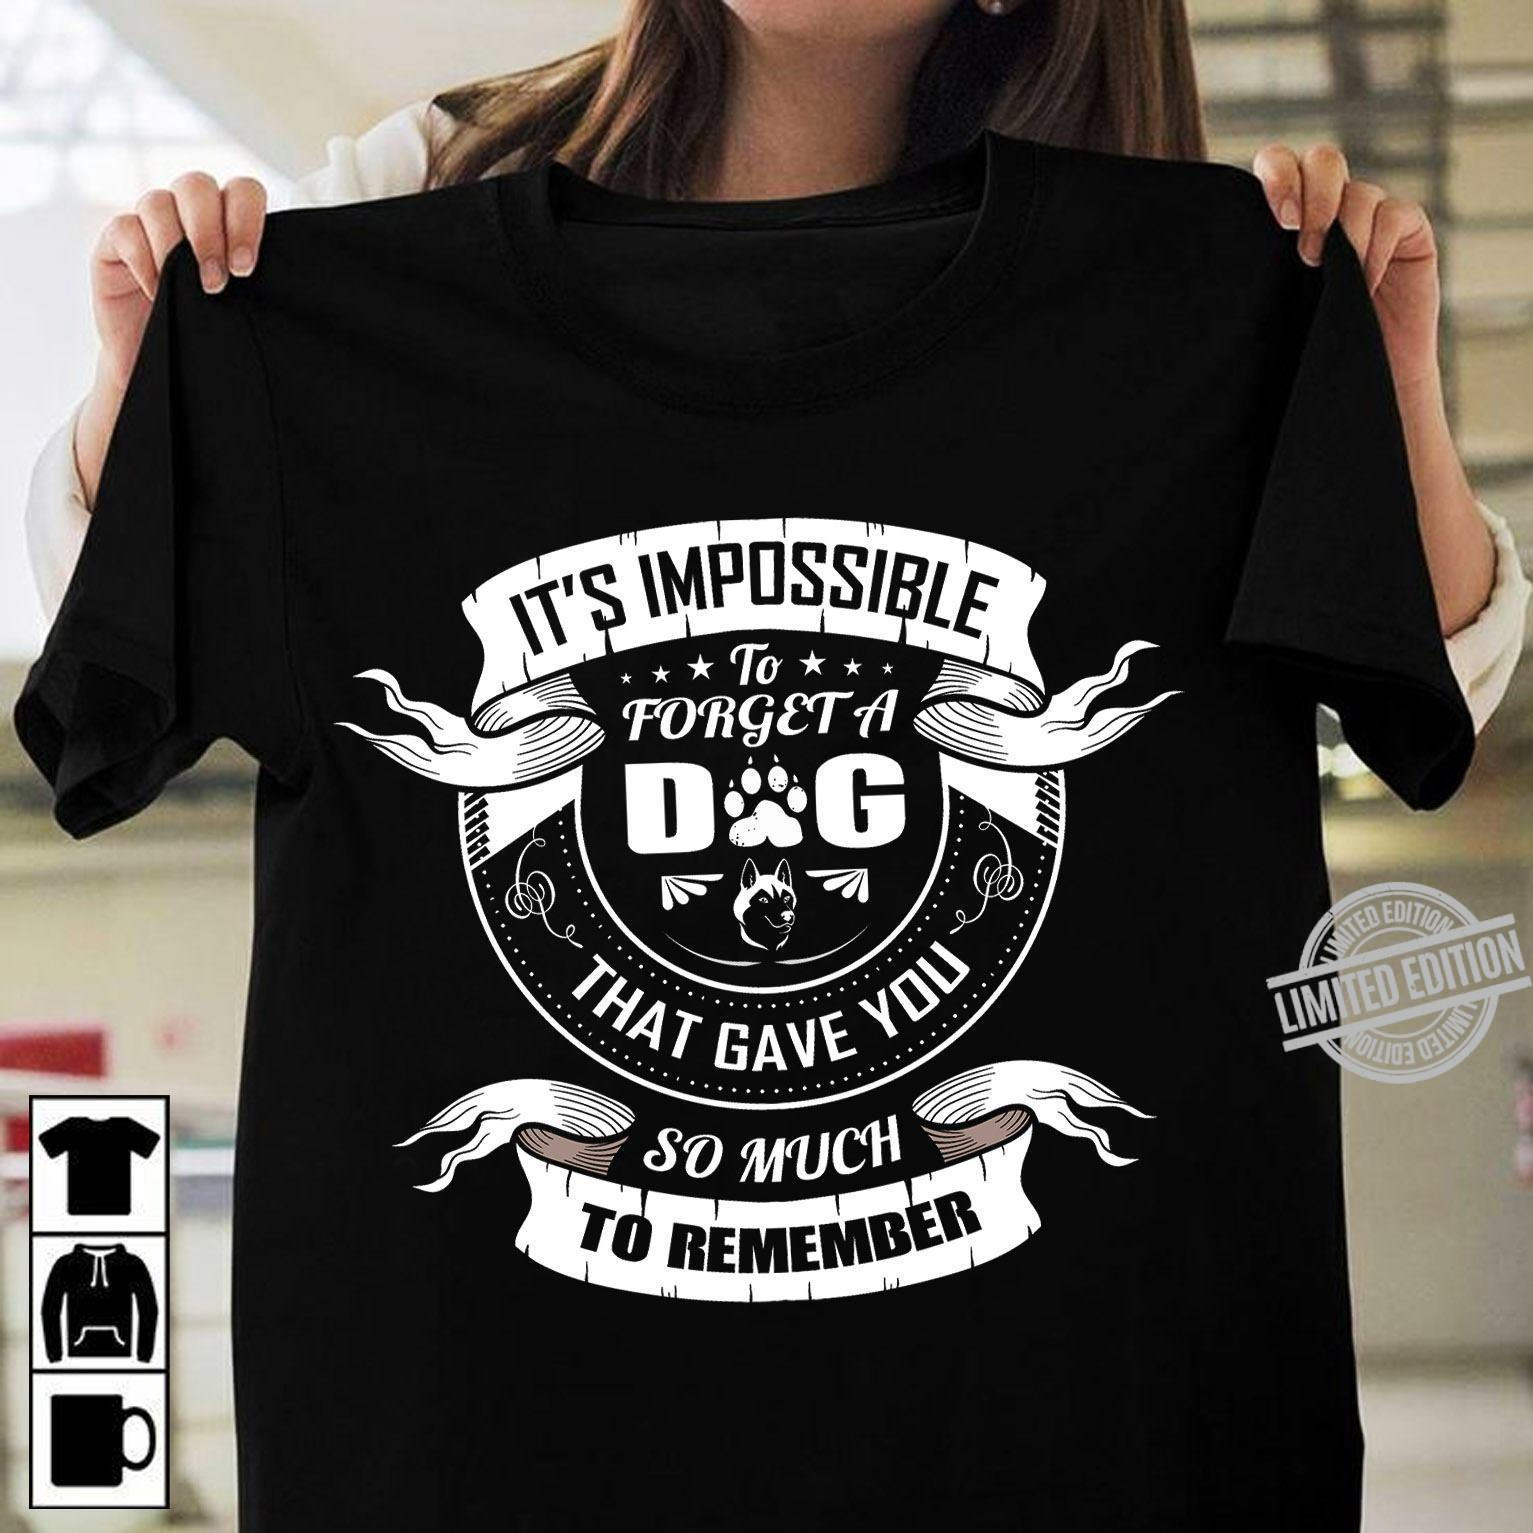 It's Impossible To Forget A Dog That Gave You So Much To Remember Shirt